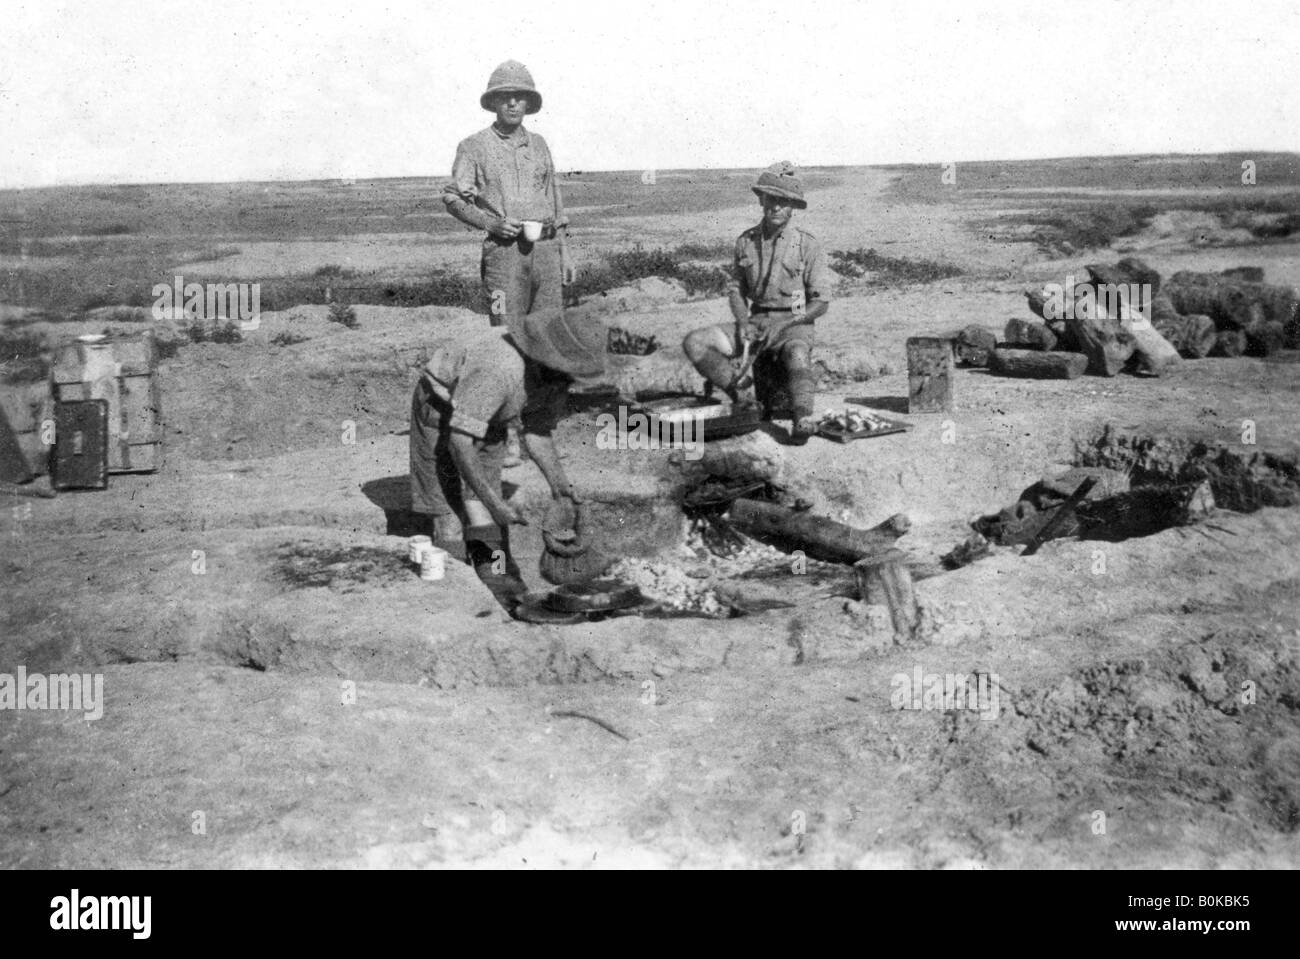 British army C company cooking, Mesopotamia, WWI, 1918. Artist: Unknown - Stock Image